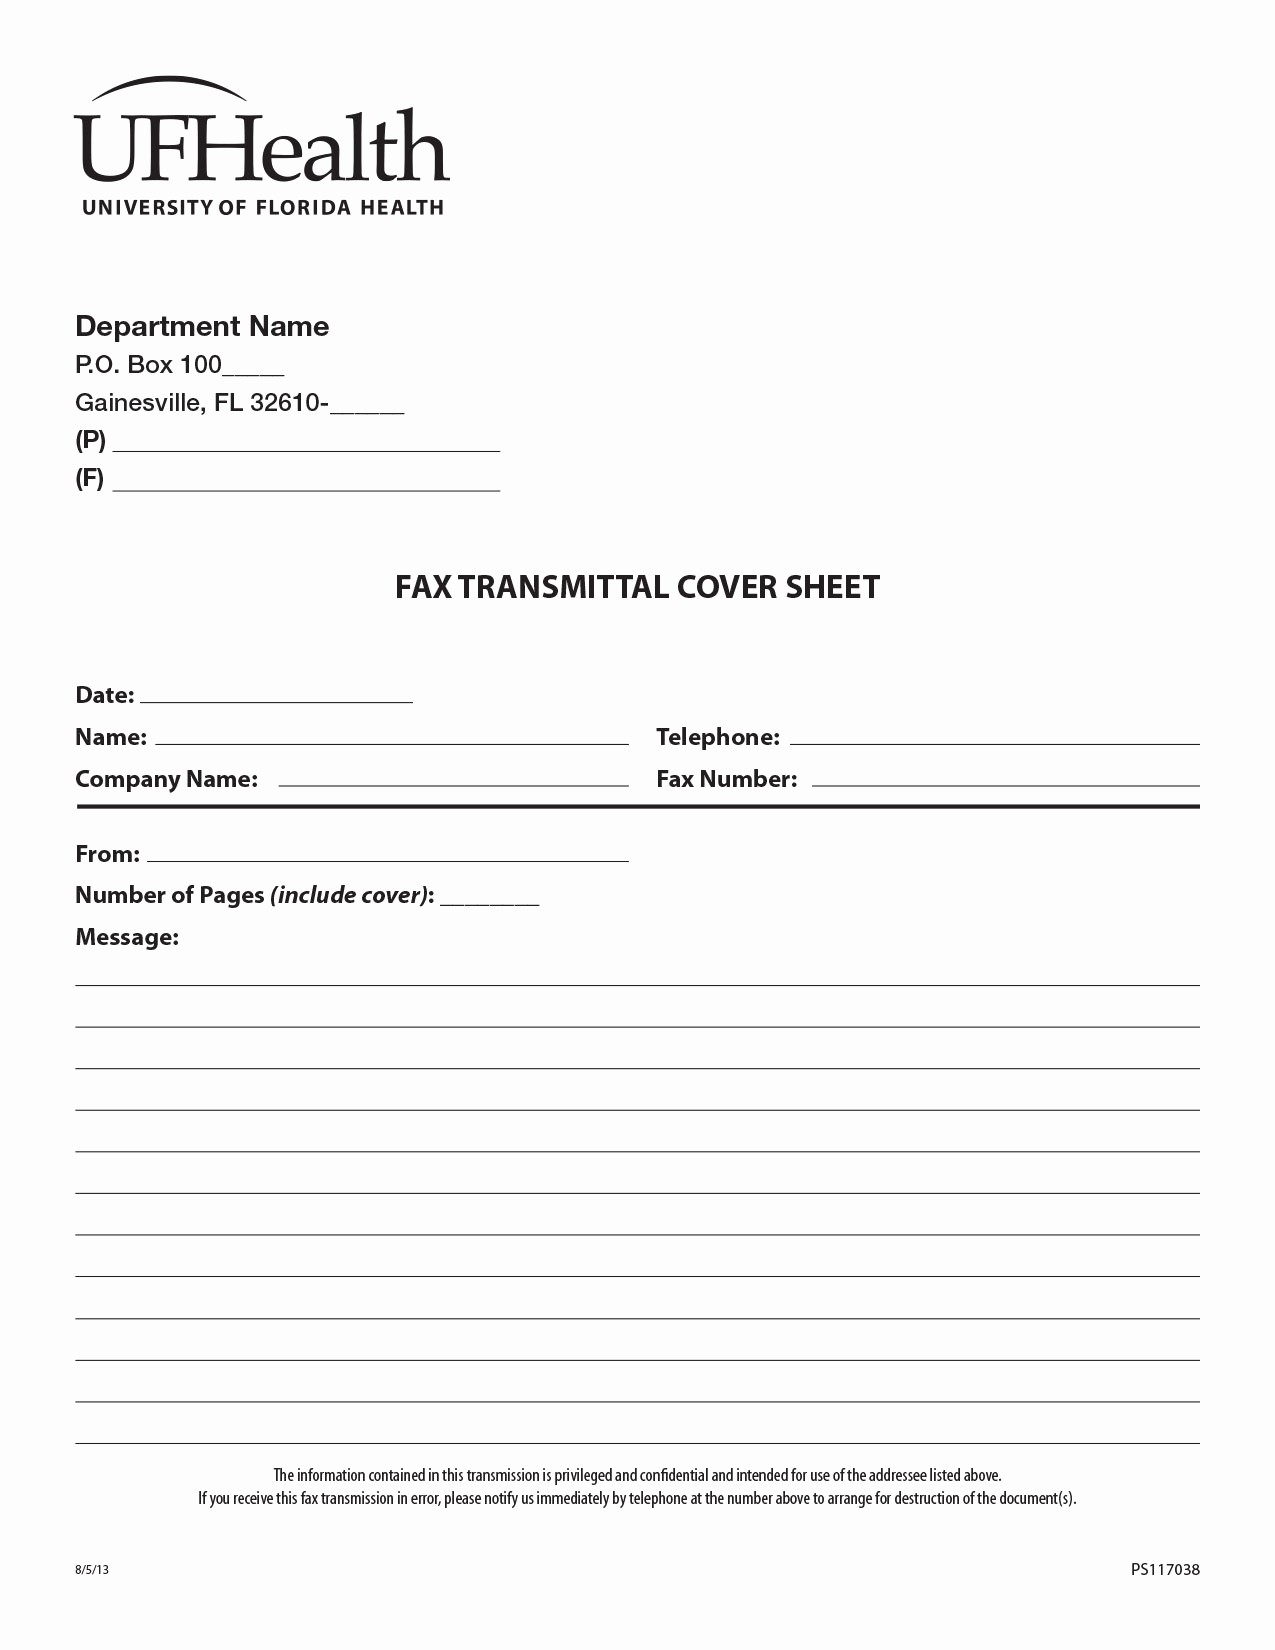 Fax Template In Word 2010 Best Of Best S Of Fax Cover Sheet Template Word 2010